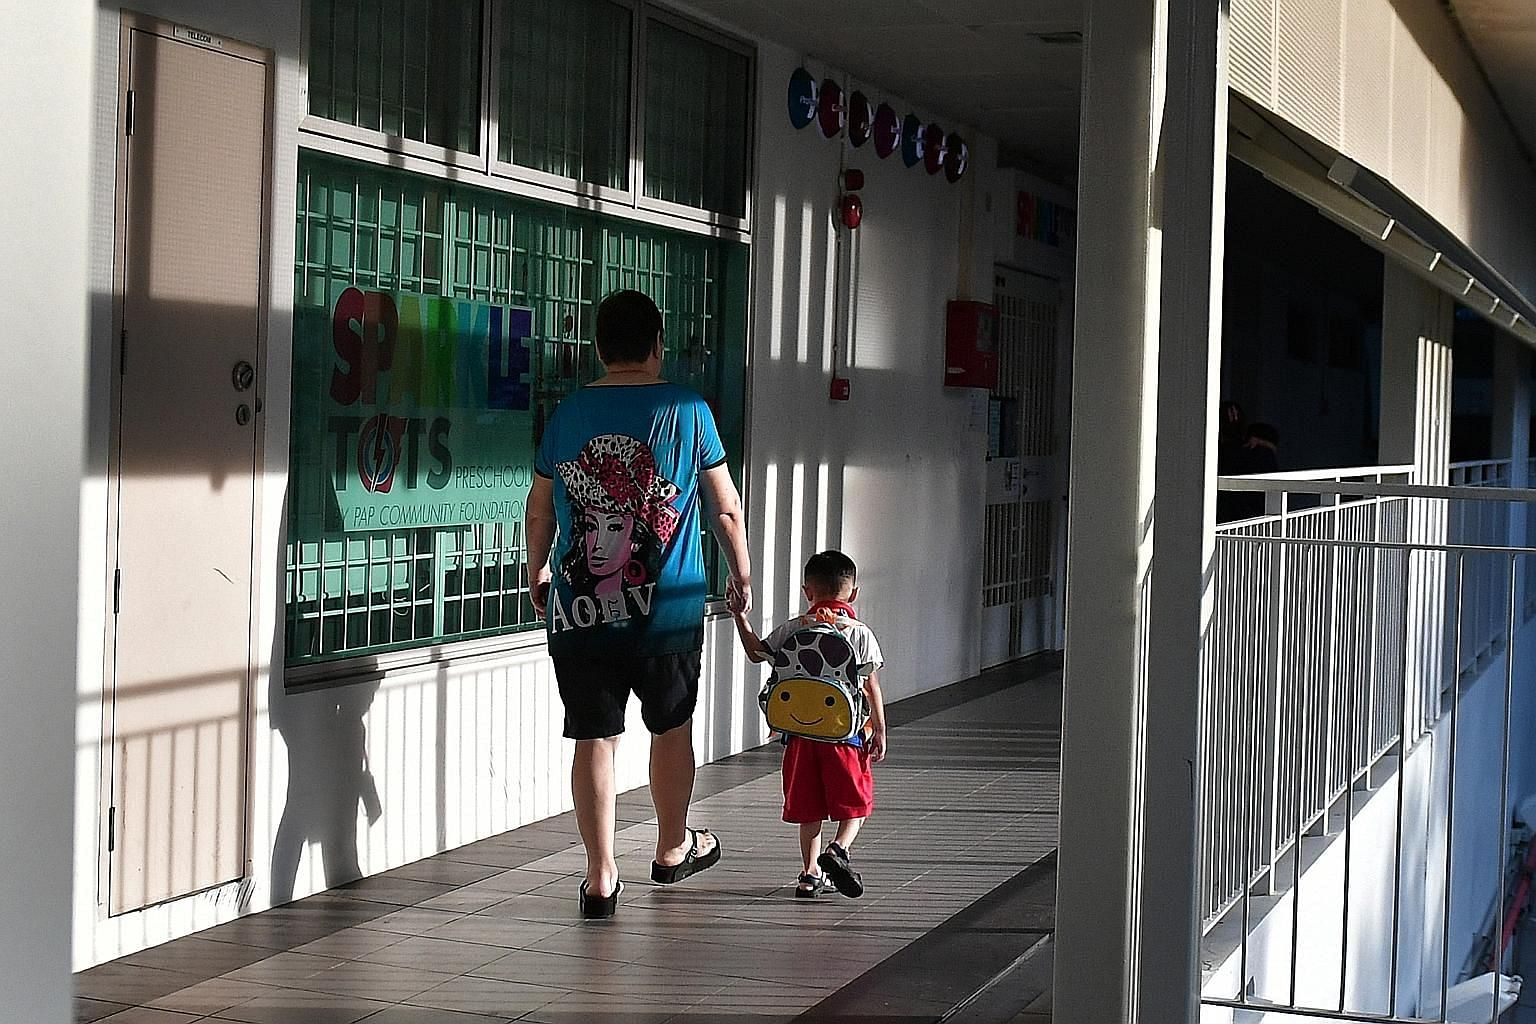 Several parents of children at the Clementi pre-school, where a staff member was found to have tuberculosis, wondered why they were informed of the incident only on March 10, when the TB Control Unit had contacted the school on March 3 and a site vis